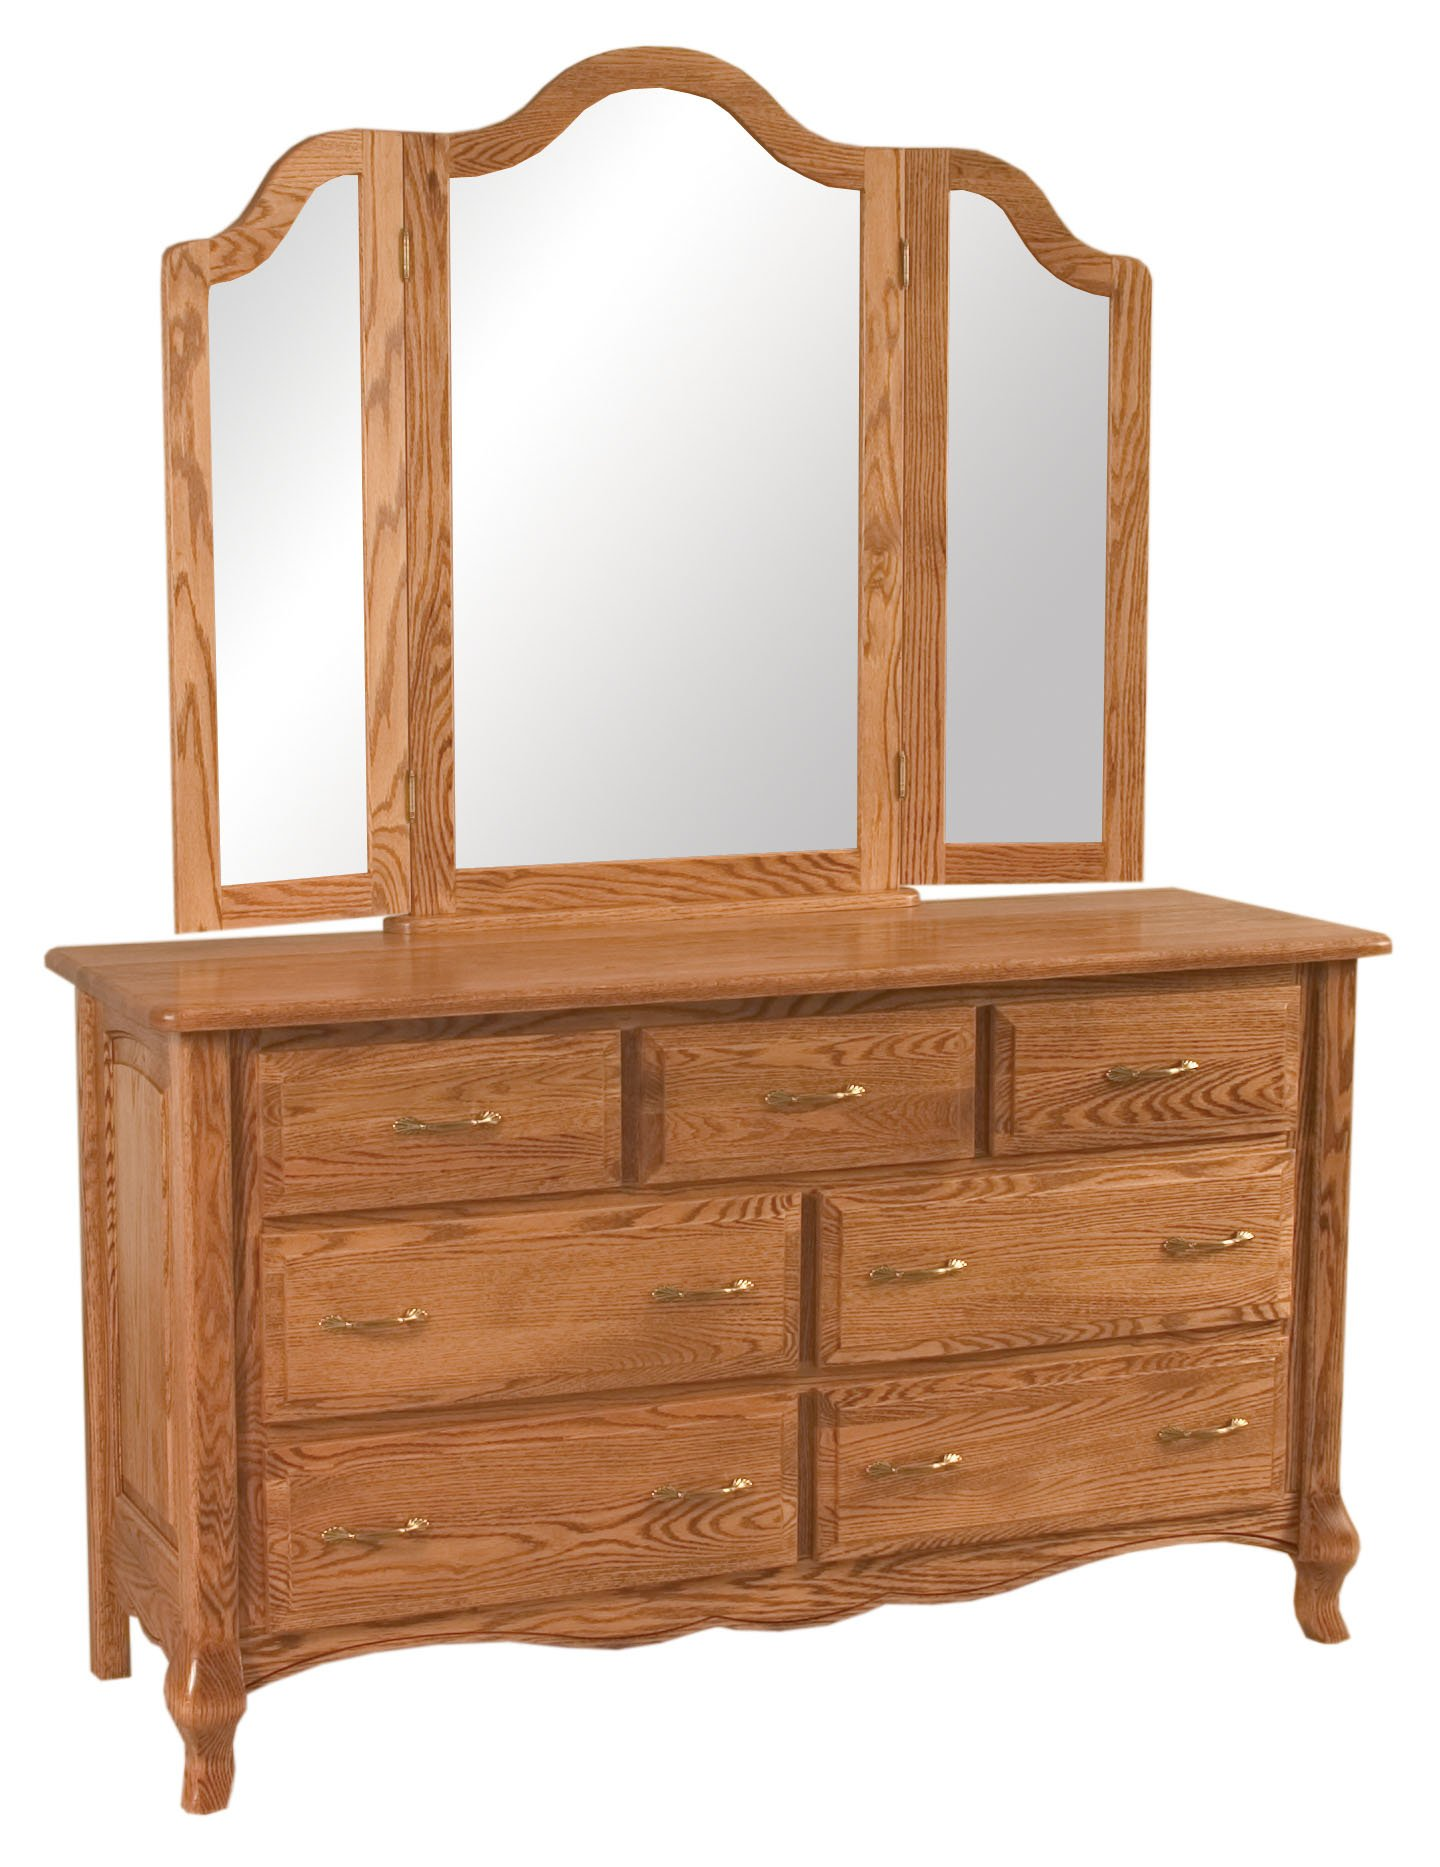 French Country 7 Drawer Dresser